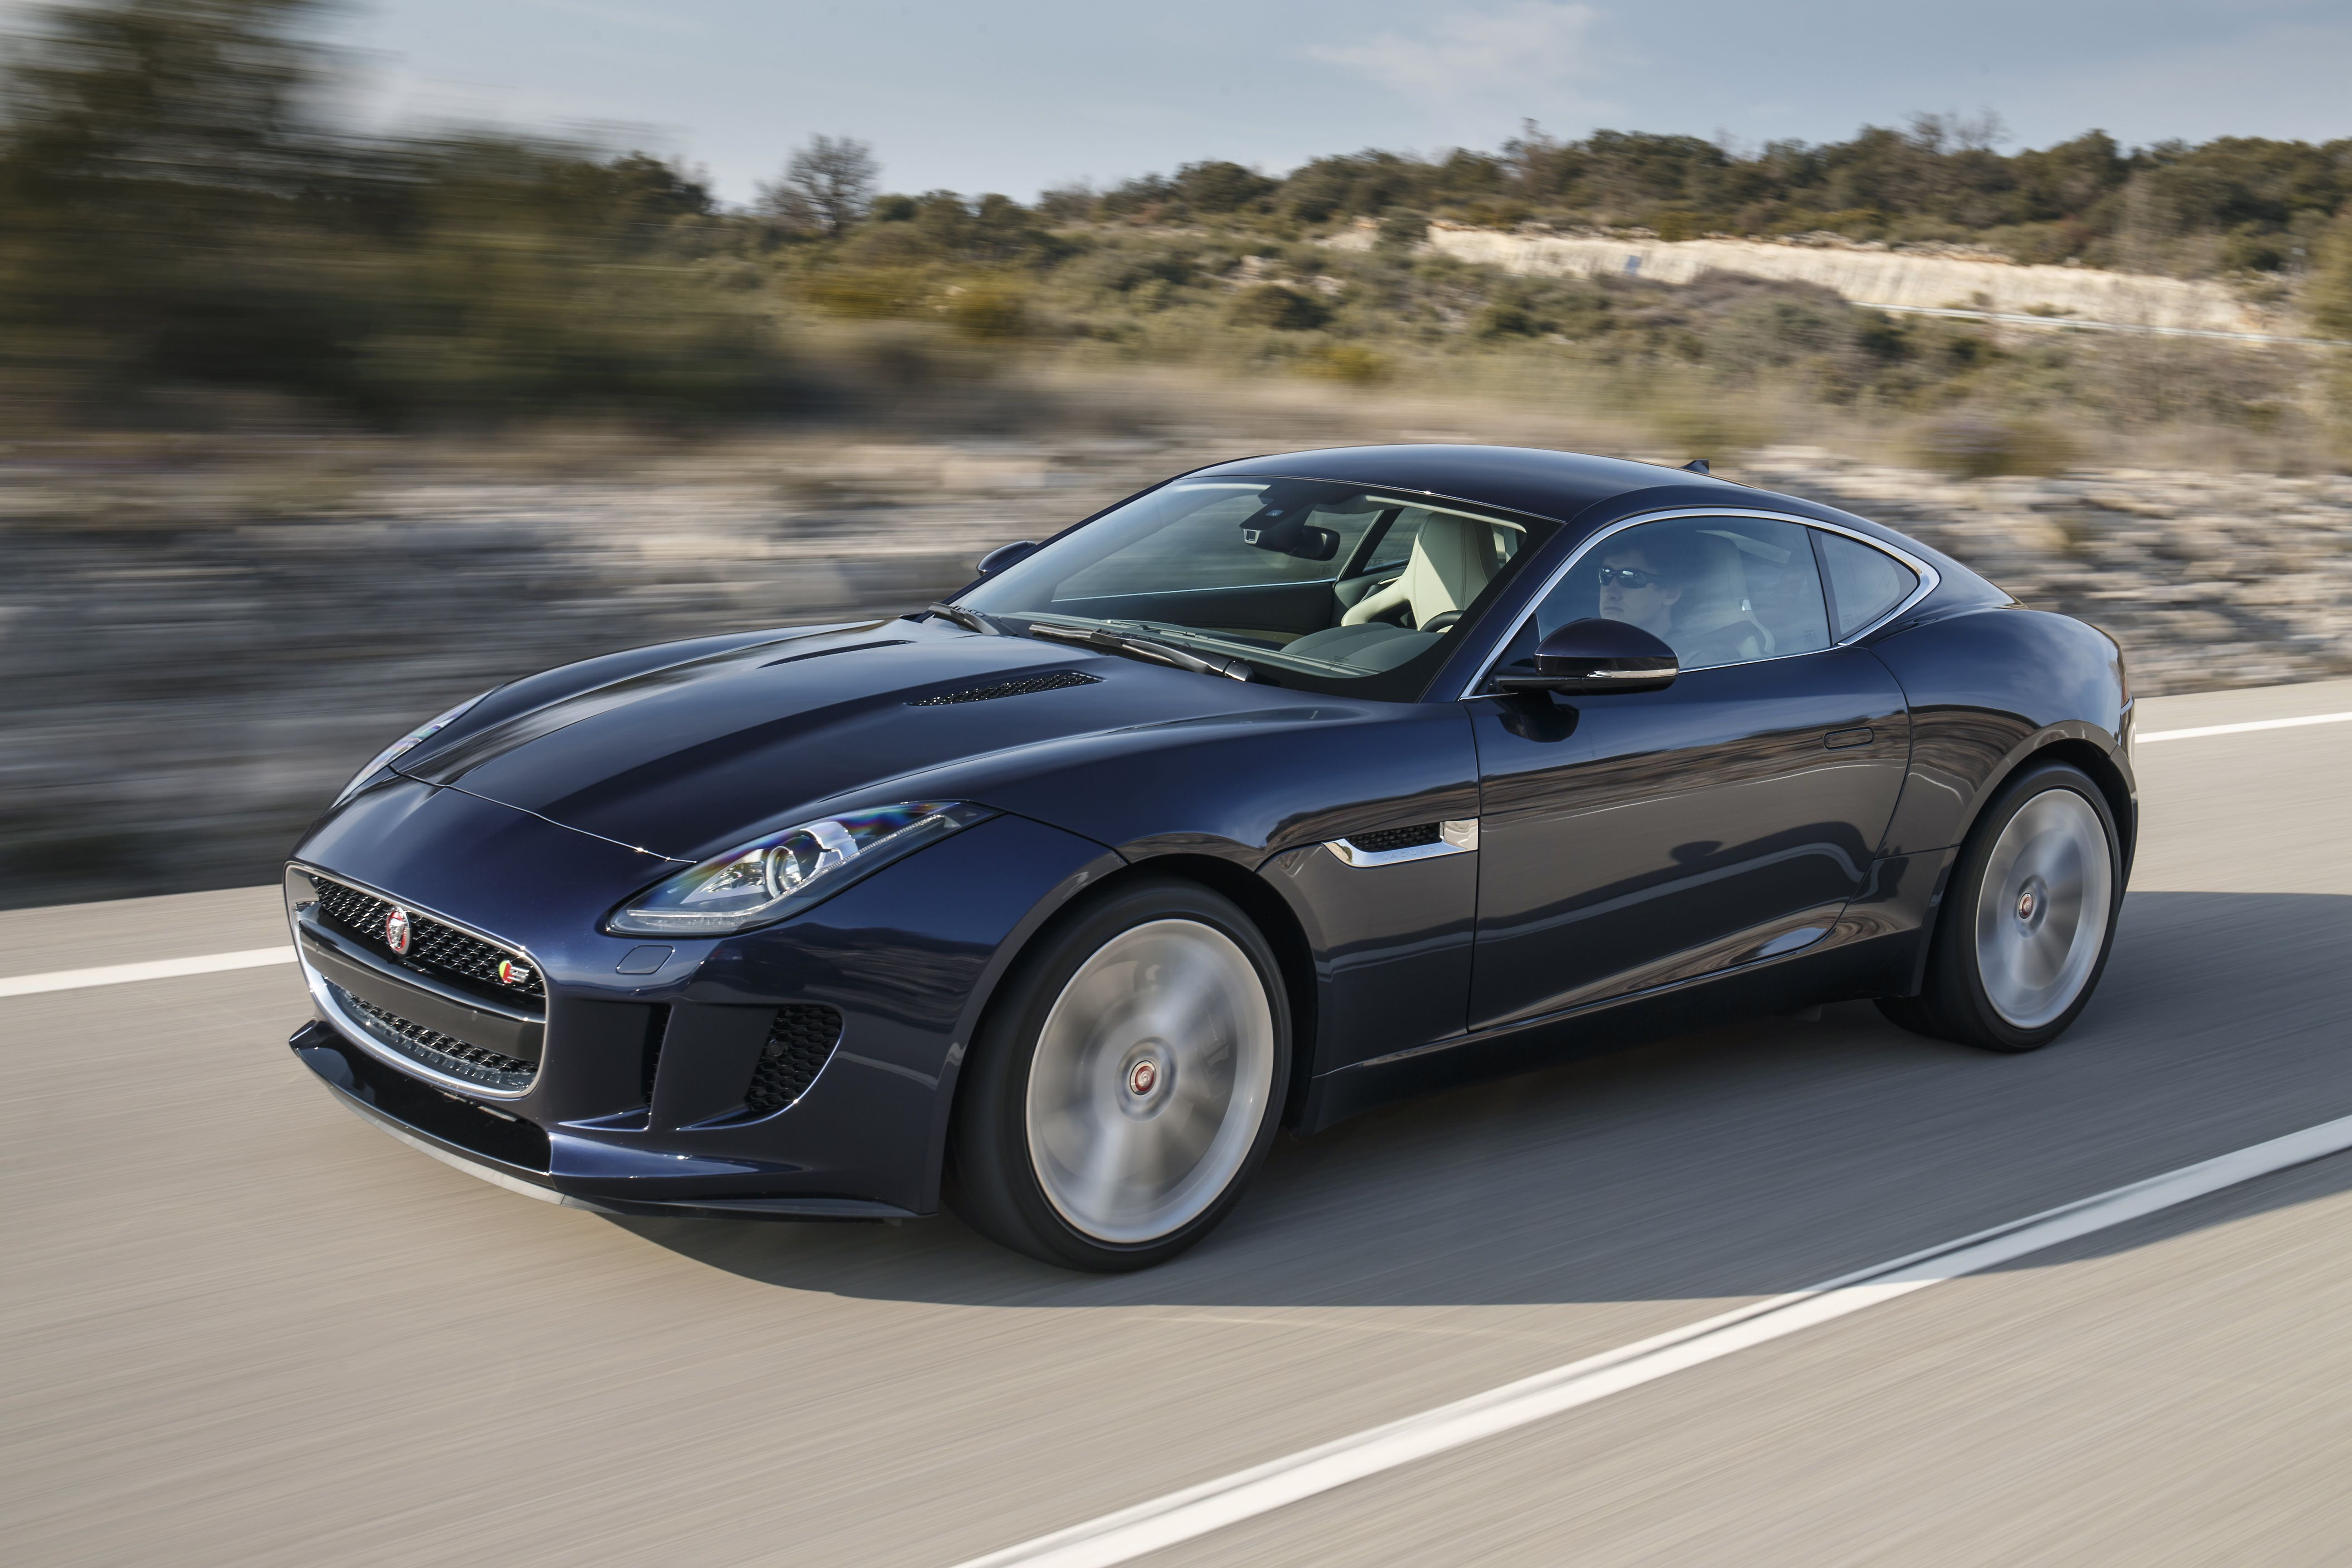 F type coupe will lead jaguar land rover premium car assault http